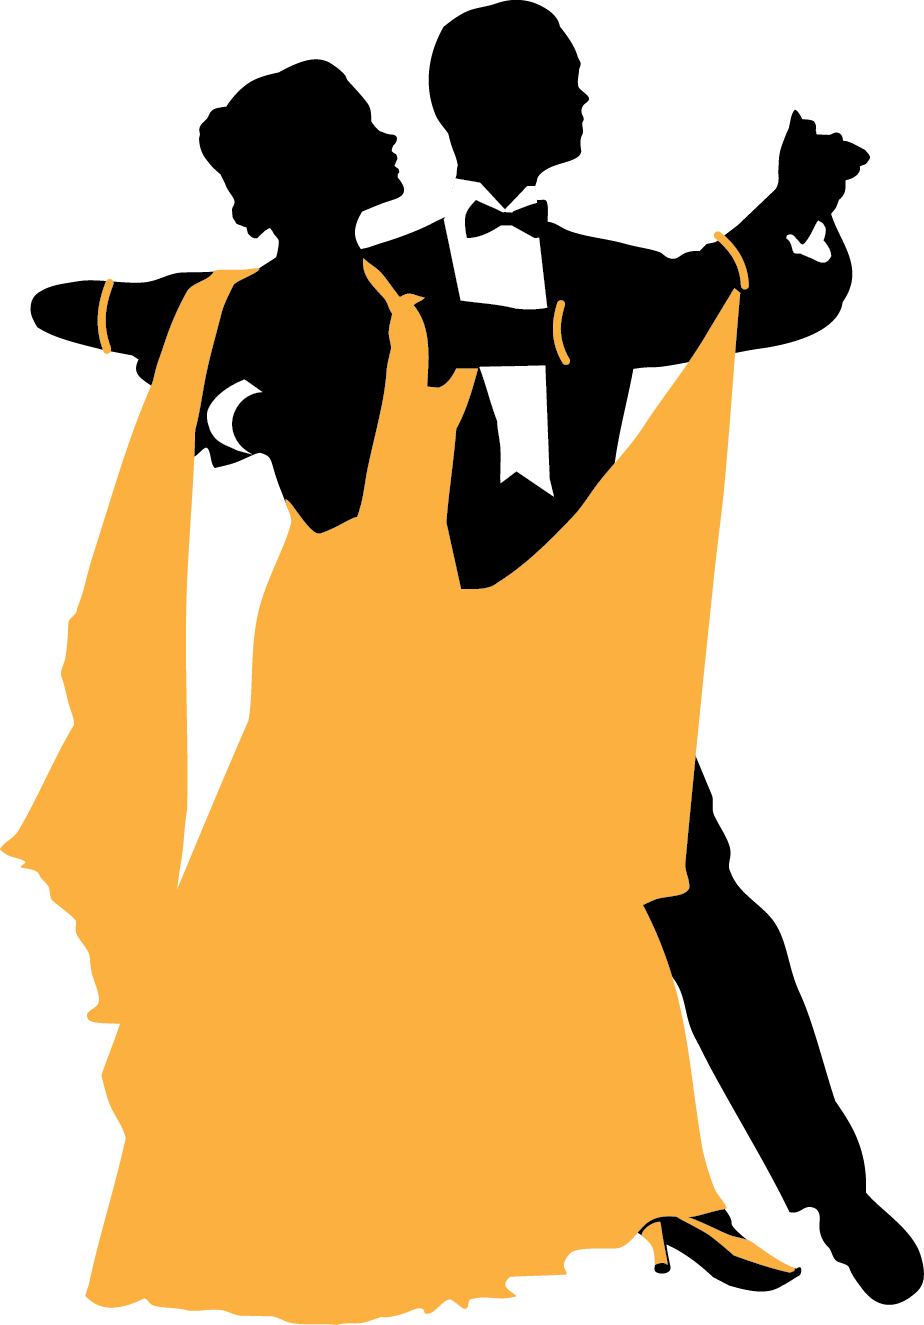 924x1325 Dancer Clipart Swing Dance Pencil And In Color Dancing Silhouette